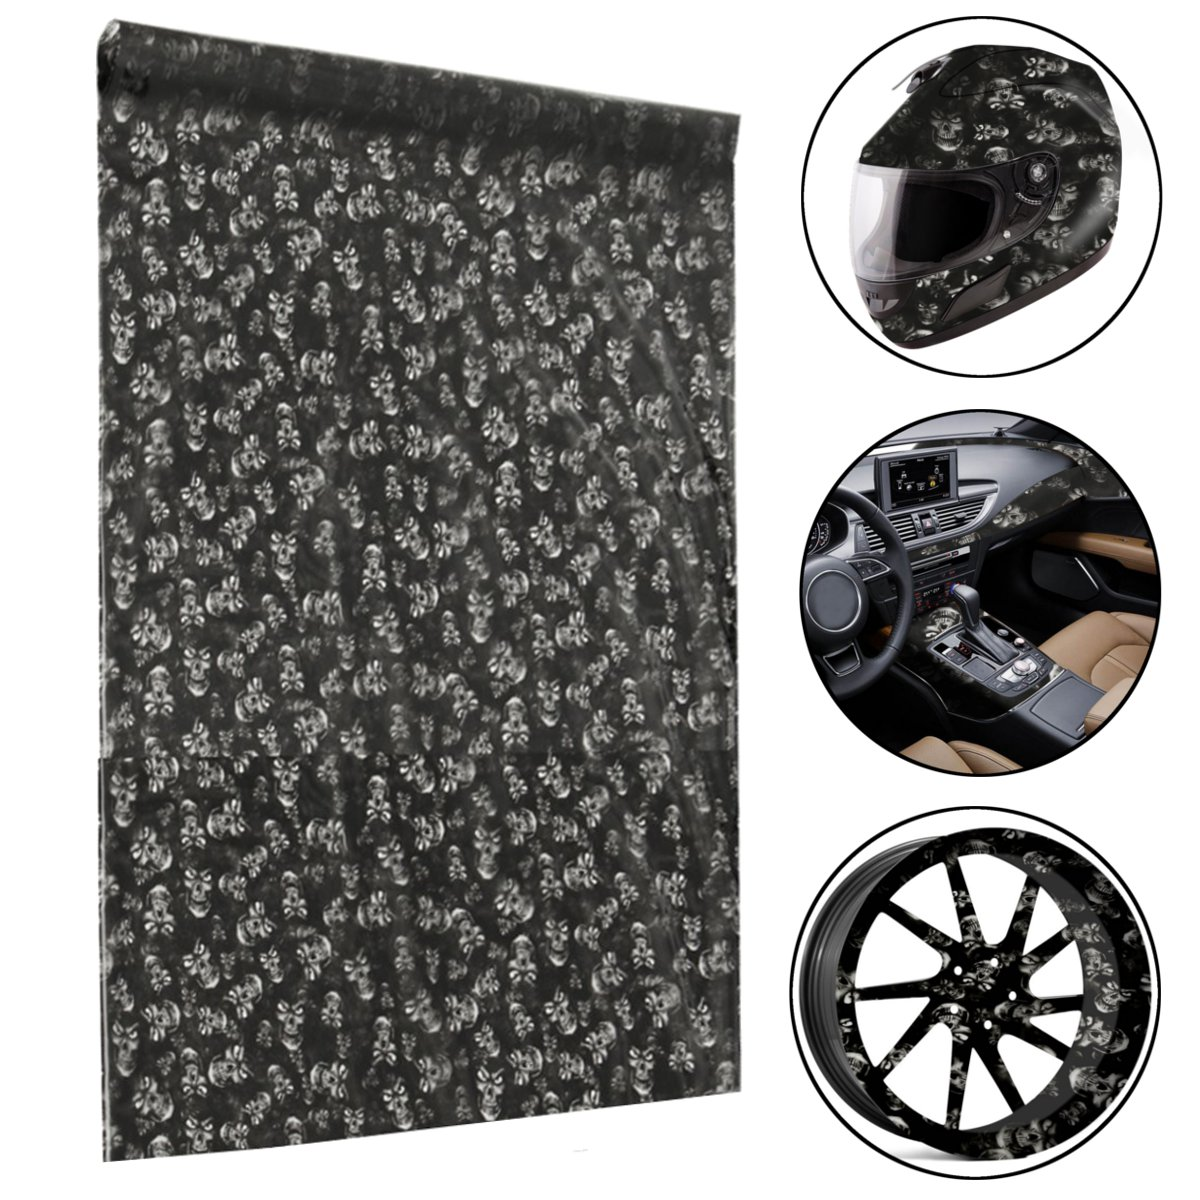 50x150cm Black PVA Hydrographic Film Water Dipping Transfer Printing Film Hydro Dip Style Decals Stickers